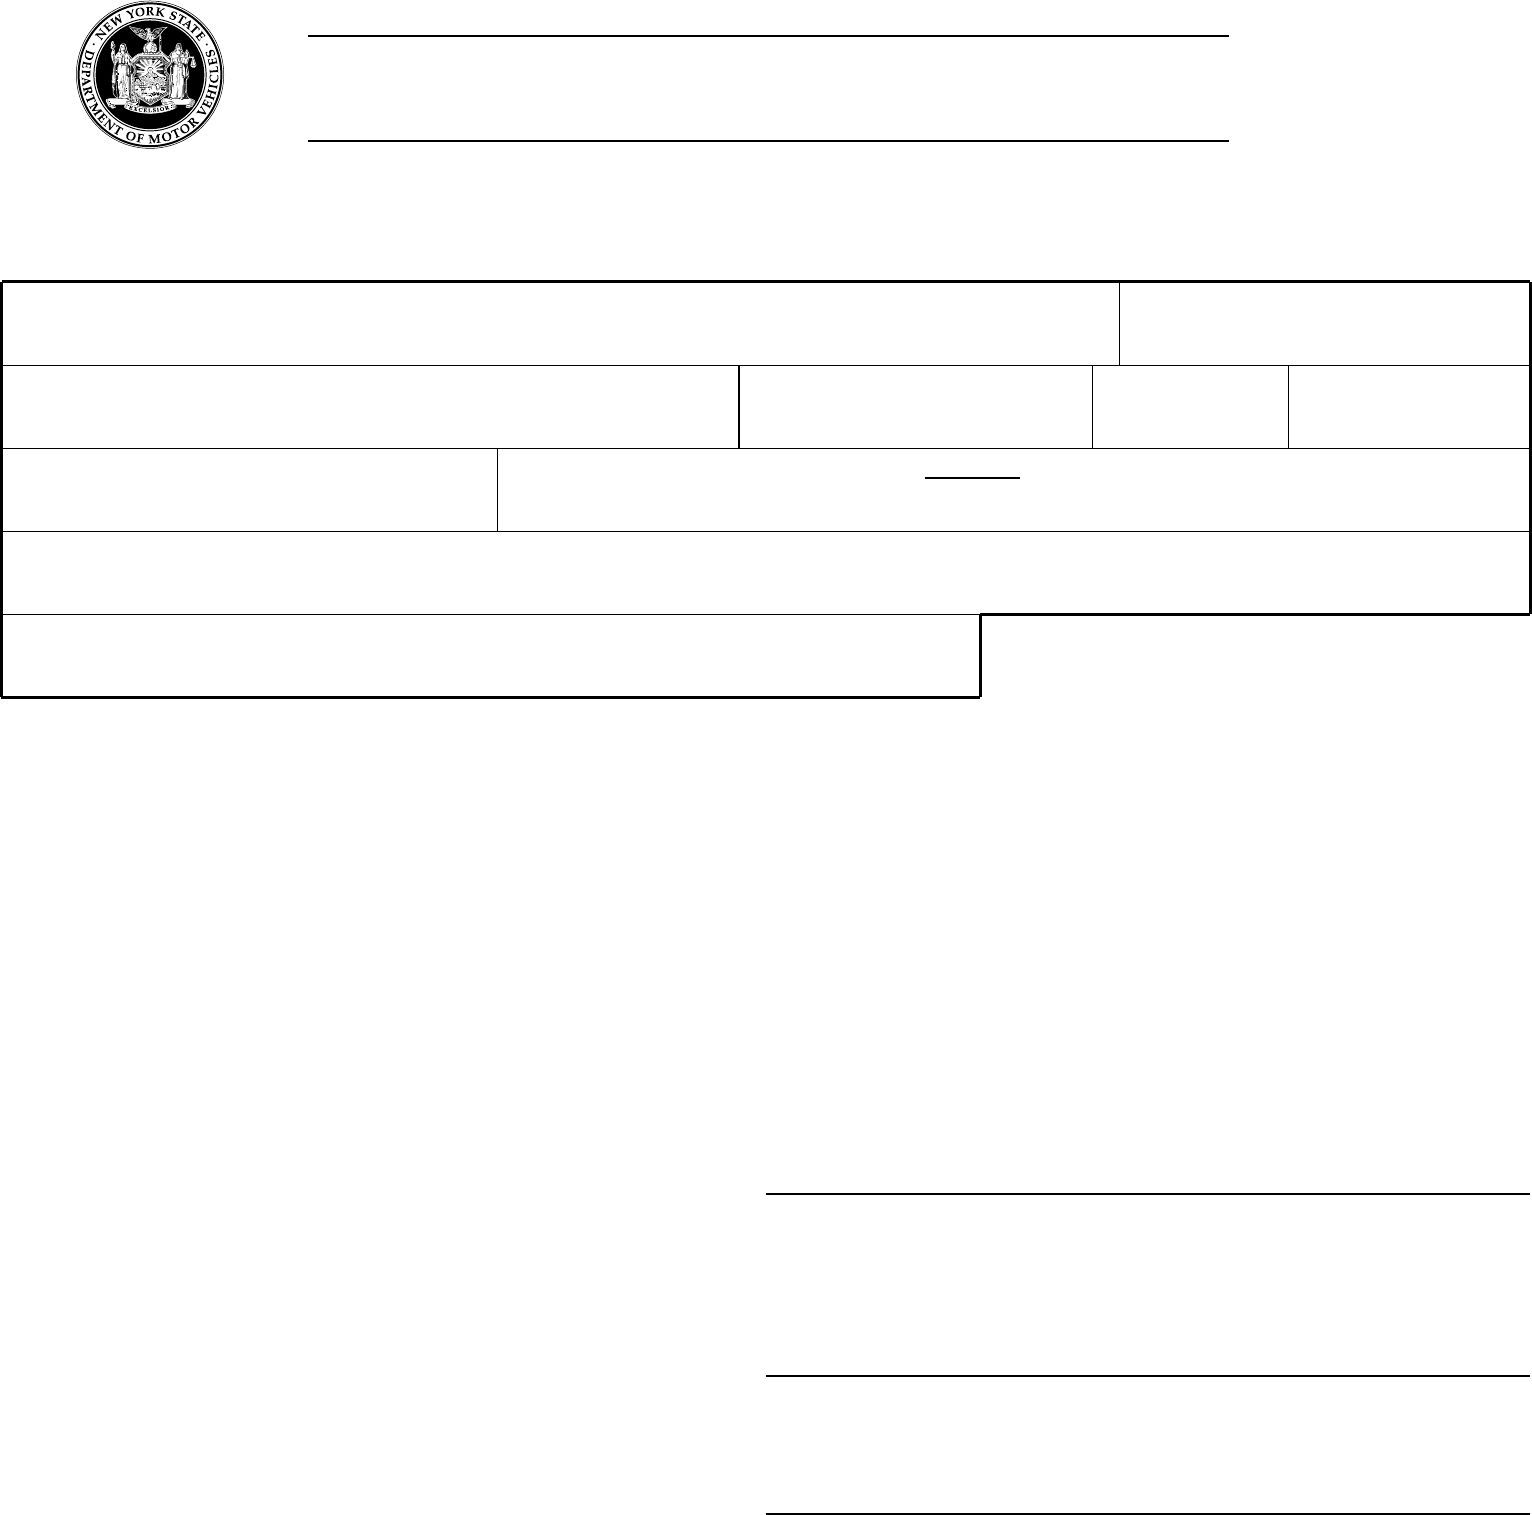 Form Mv 522 1 Application For Access To Dmv Internet